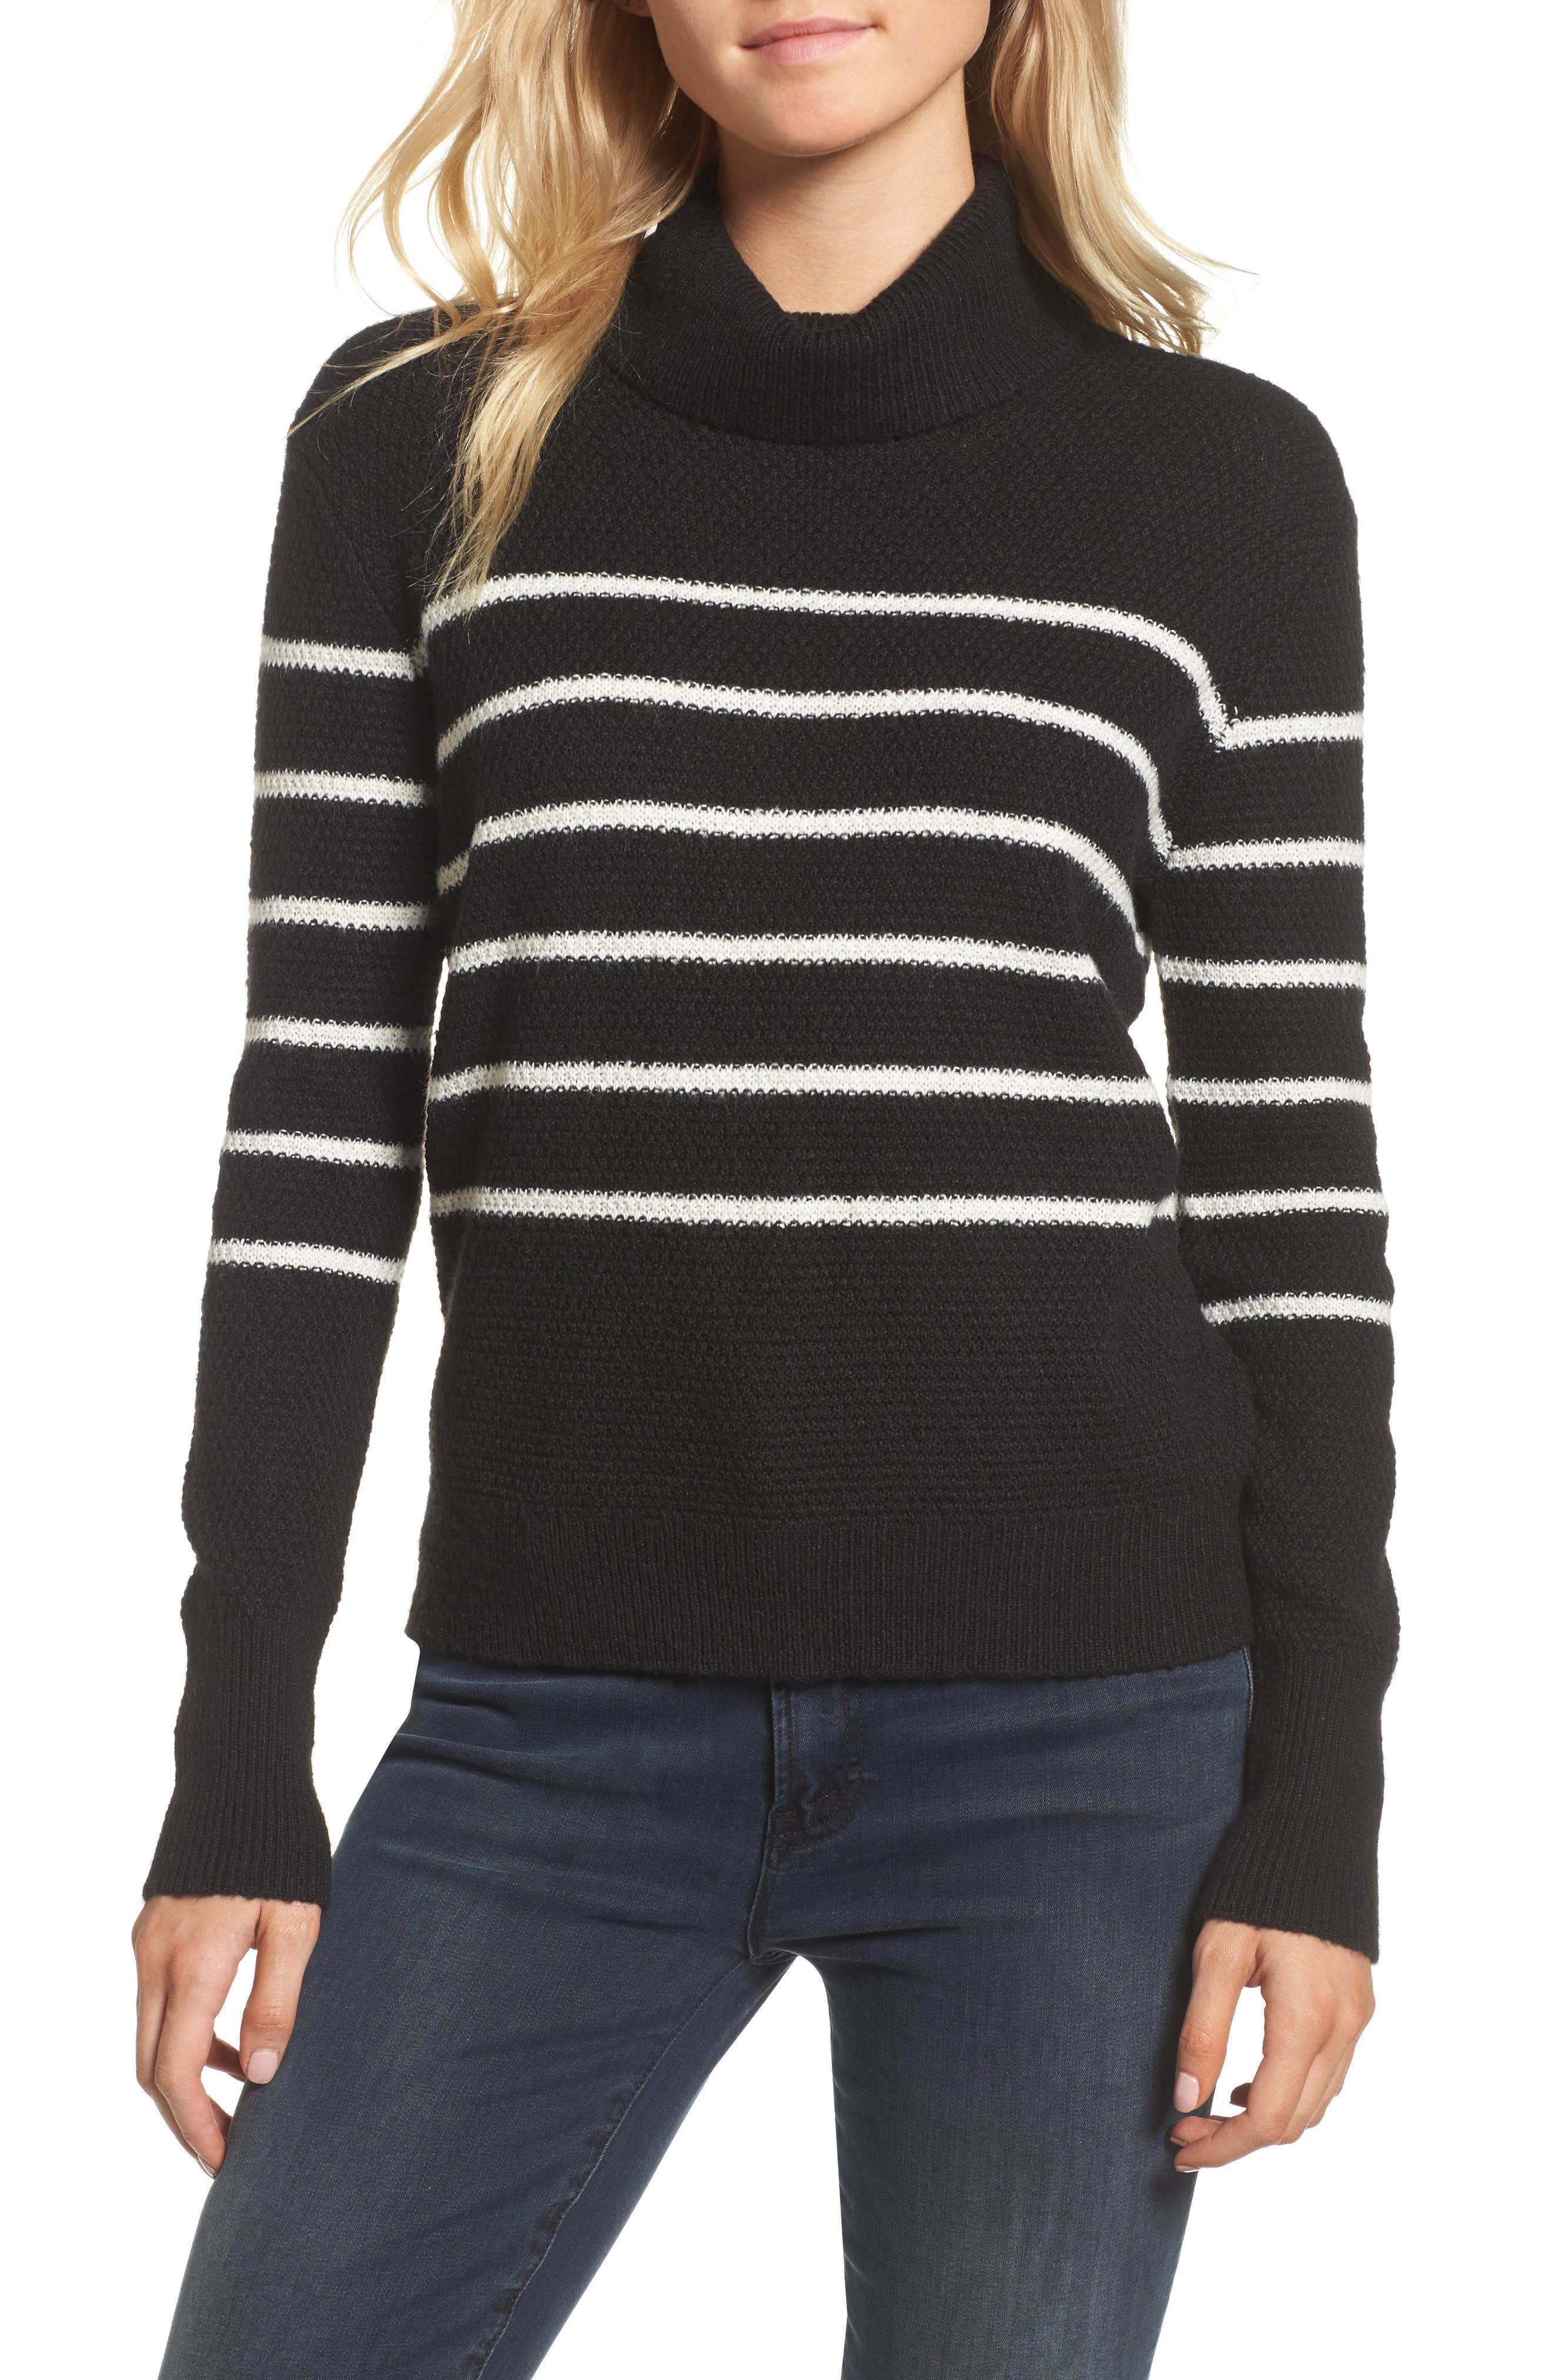 cupcakes and cashmere Renny Turtleneck Sweater